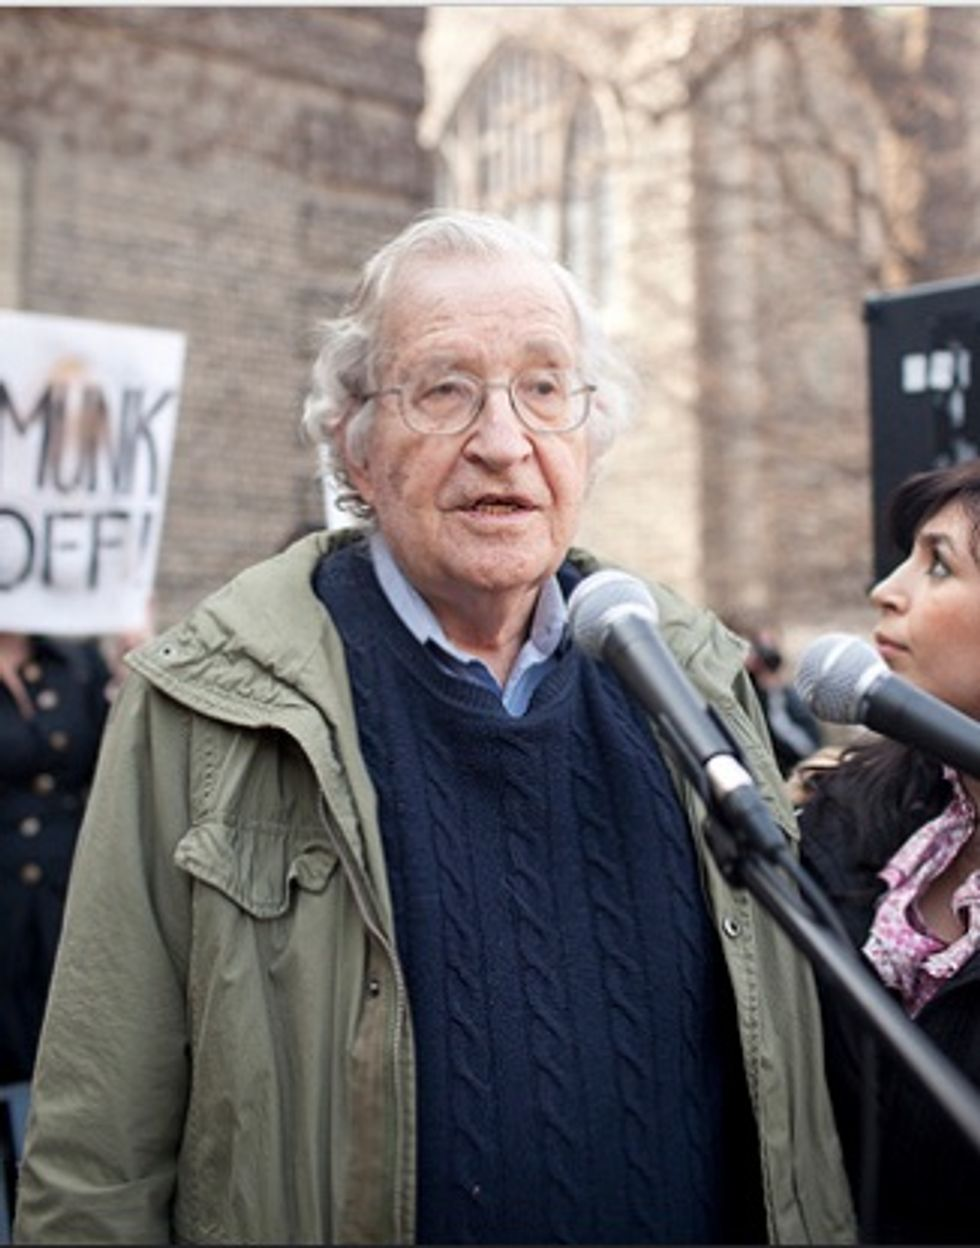 Noam Chomsky: Social media outlets have 'become major forces for undermining democracy'